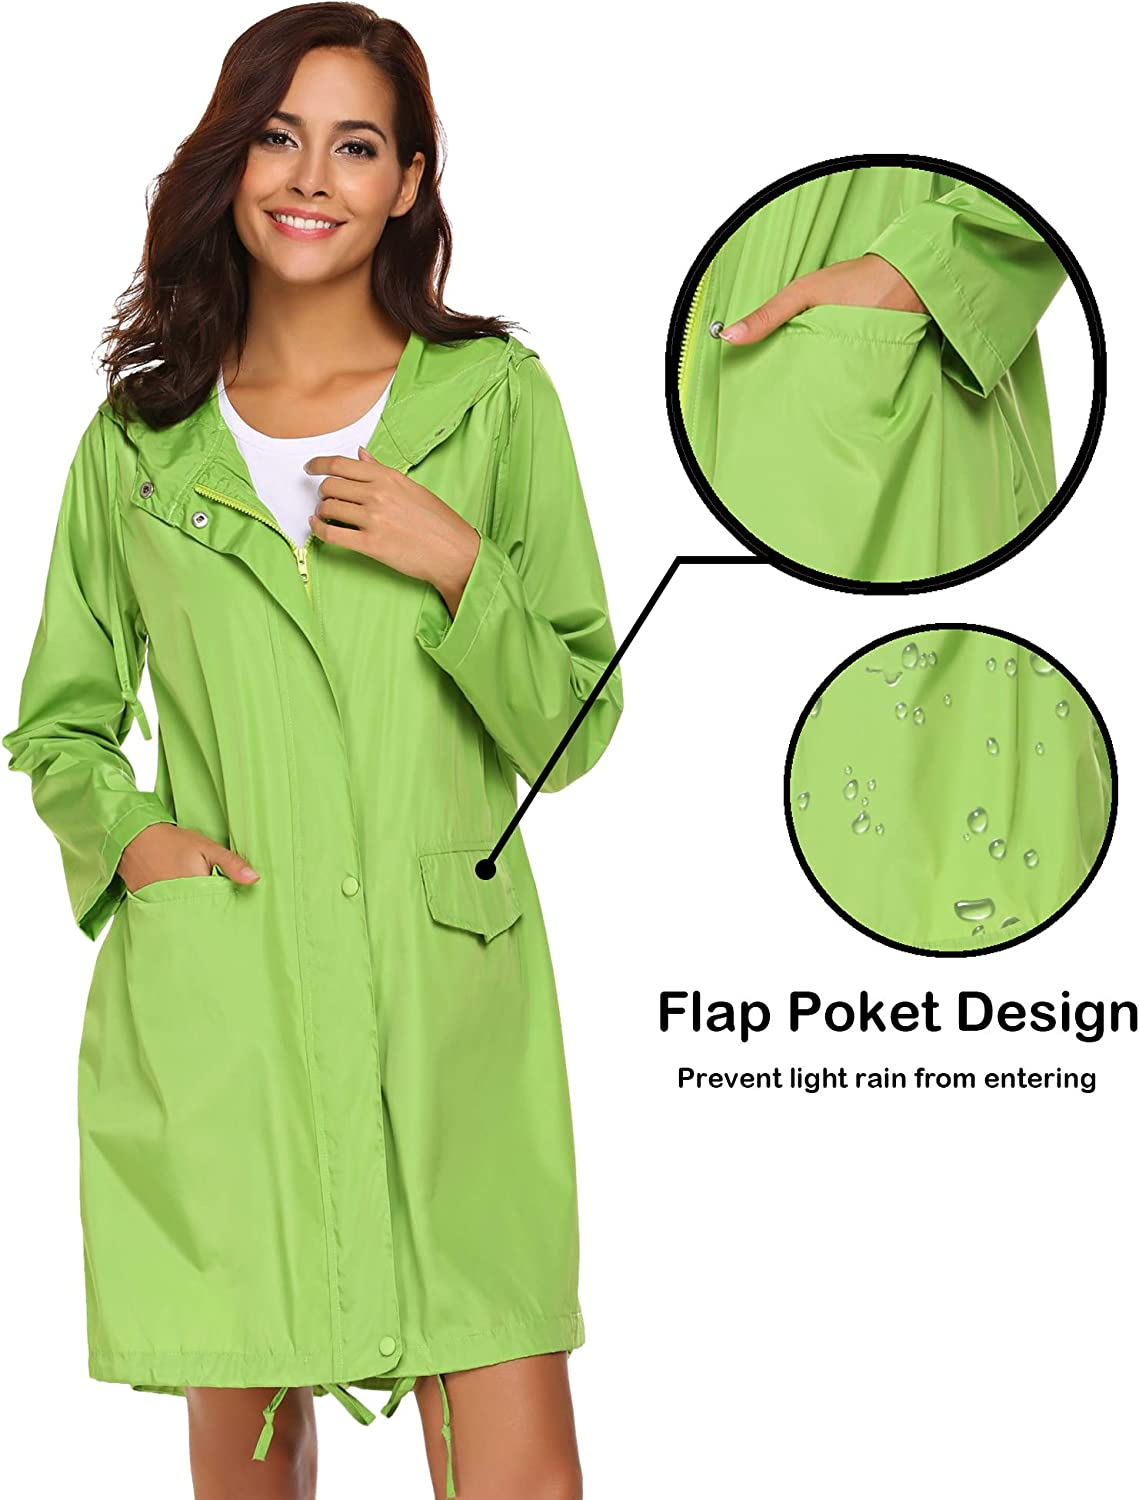 SoTeer Rain Coat Women Long Rain Jacket Lightweight Hooded Waterproof Active Outdoor Rain Jacket Windbreaker S-XXL